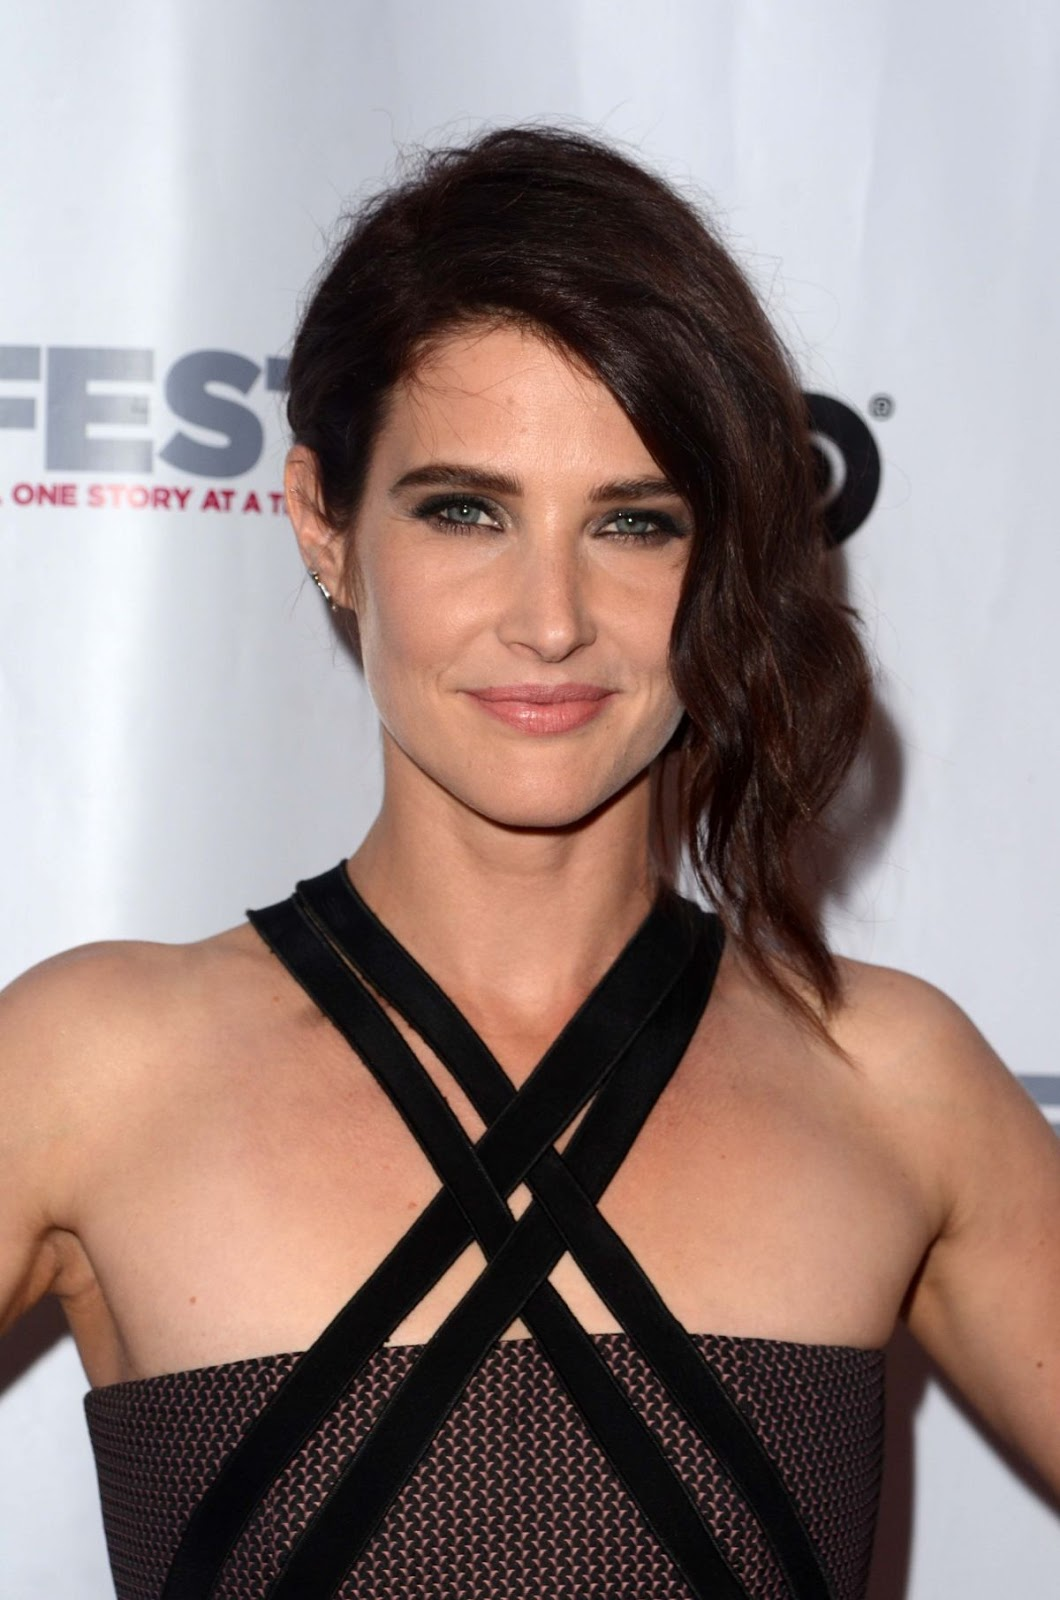 HQ Photos of Jack Reacher actress Cobie Smulders at The Invention Opening Night Gala in Los Angeles